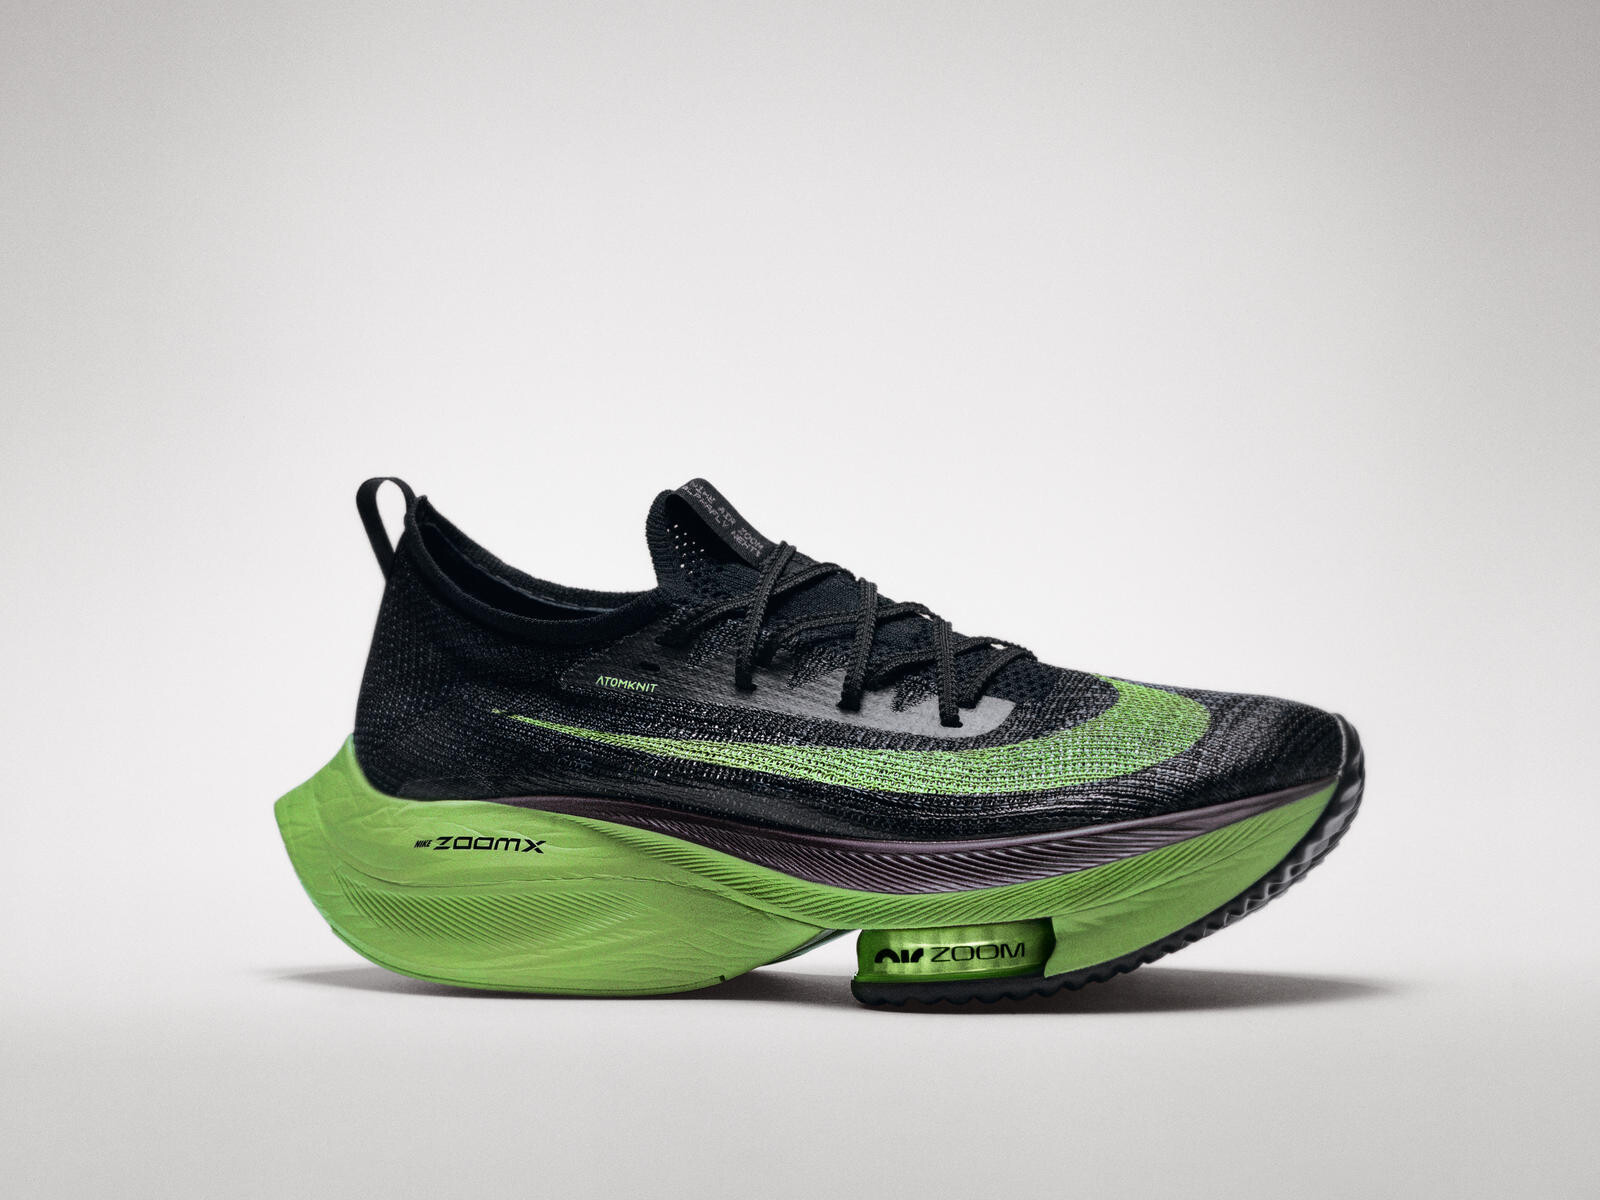 NIKE_AIR_ZOOM_ALPHAFLY_NEXT_PERCENT_native_1600